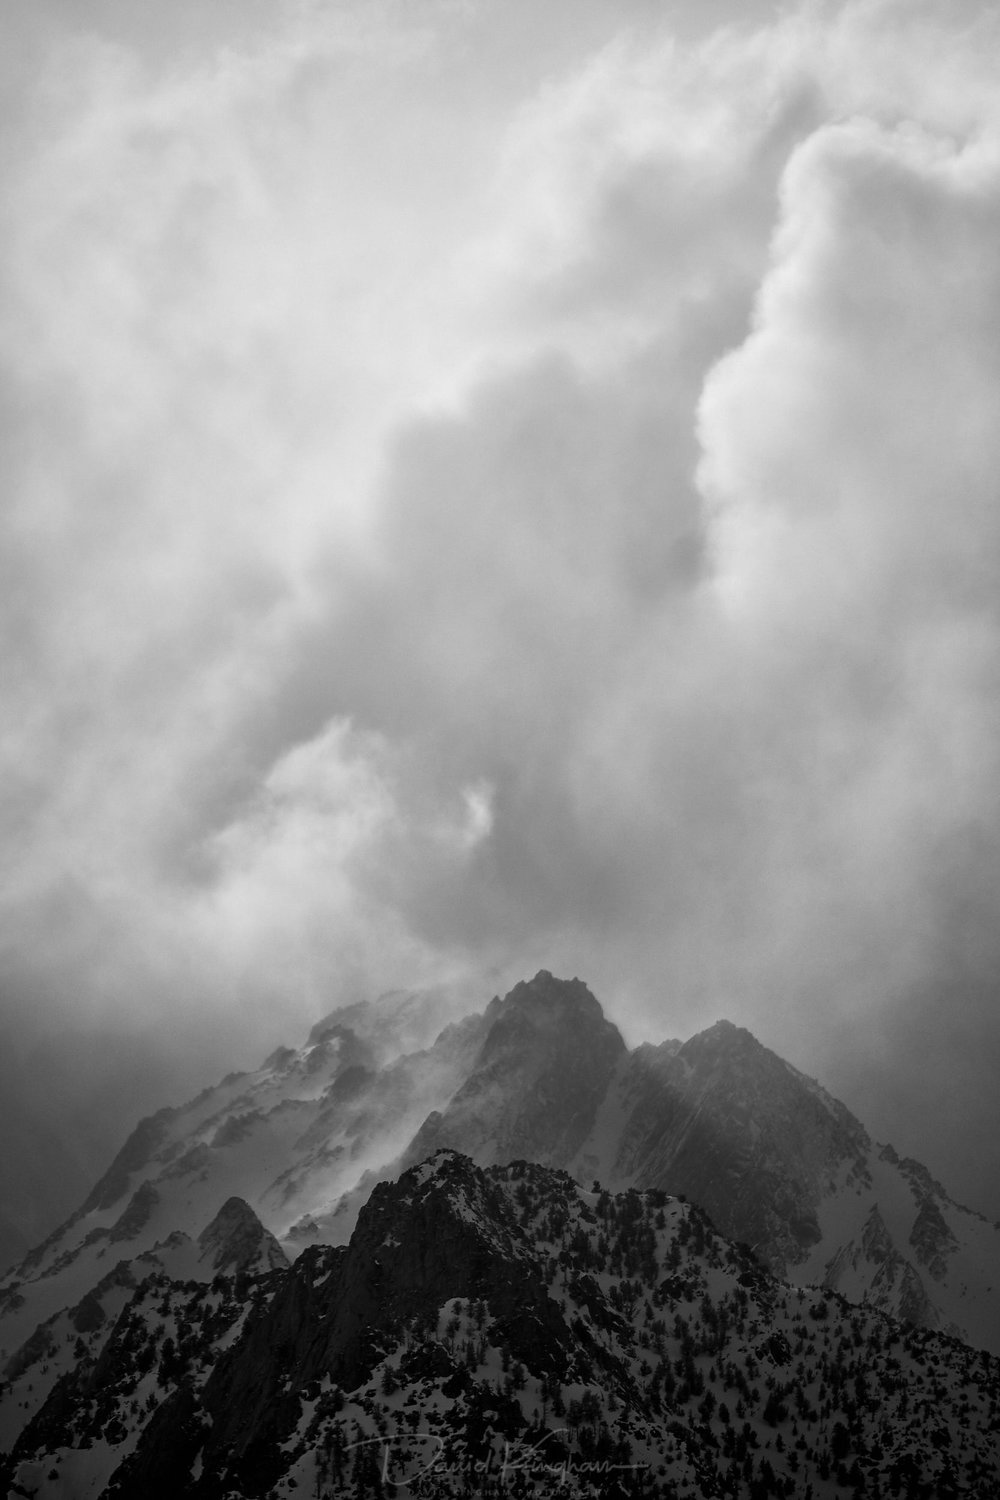 David Kingham  - Fujifilm 100-400 @ 252mm (Equivalent focal length of 378mm), ISO 200, f/5, 1/4500s Composition - Negative space gives breathing room for the immense mountain peak